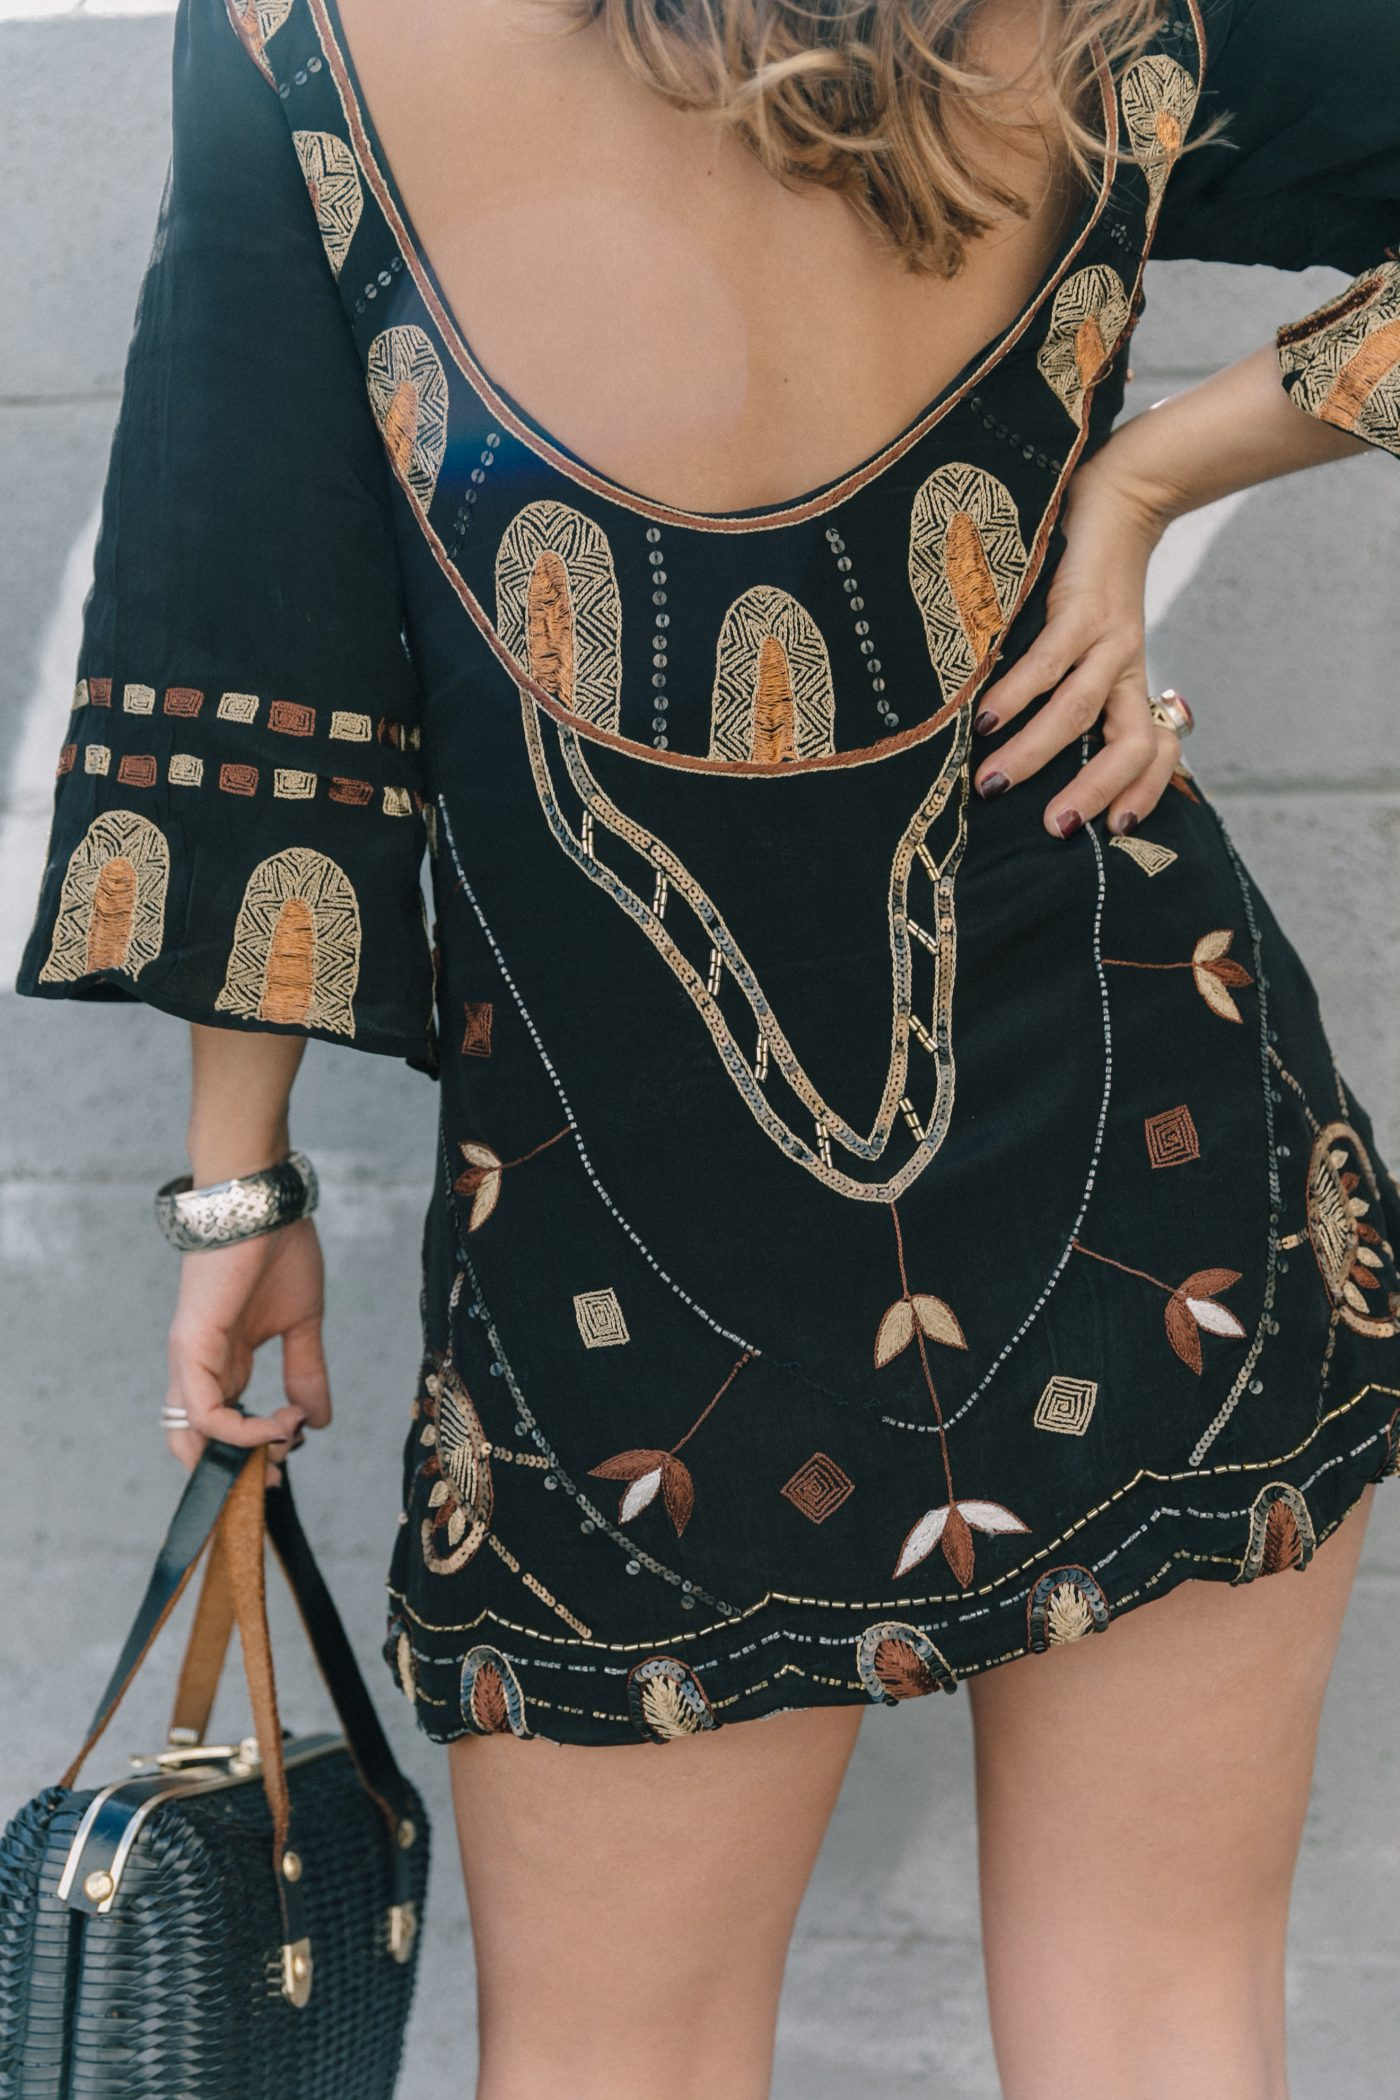 Boho_Dress-Jens_Pirate_Booty-Black_Beaded_Dress-Lace_Up_Sandals-Los_Angeles-Outfit-Collage_Vintage-42